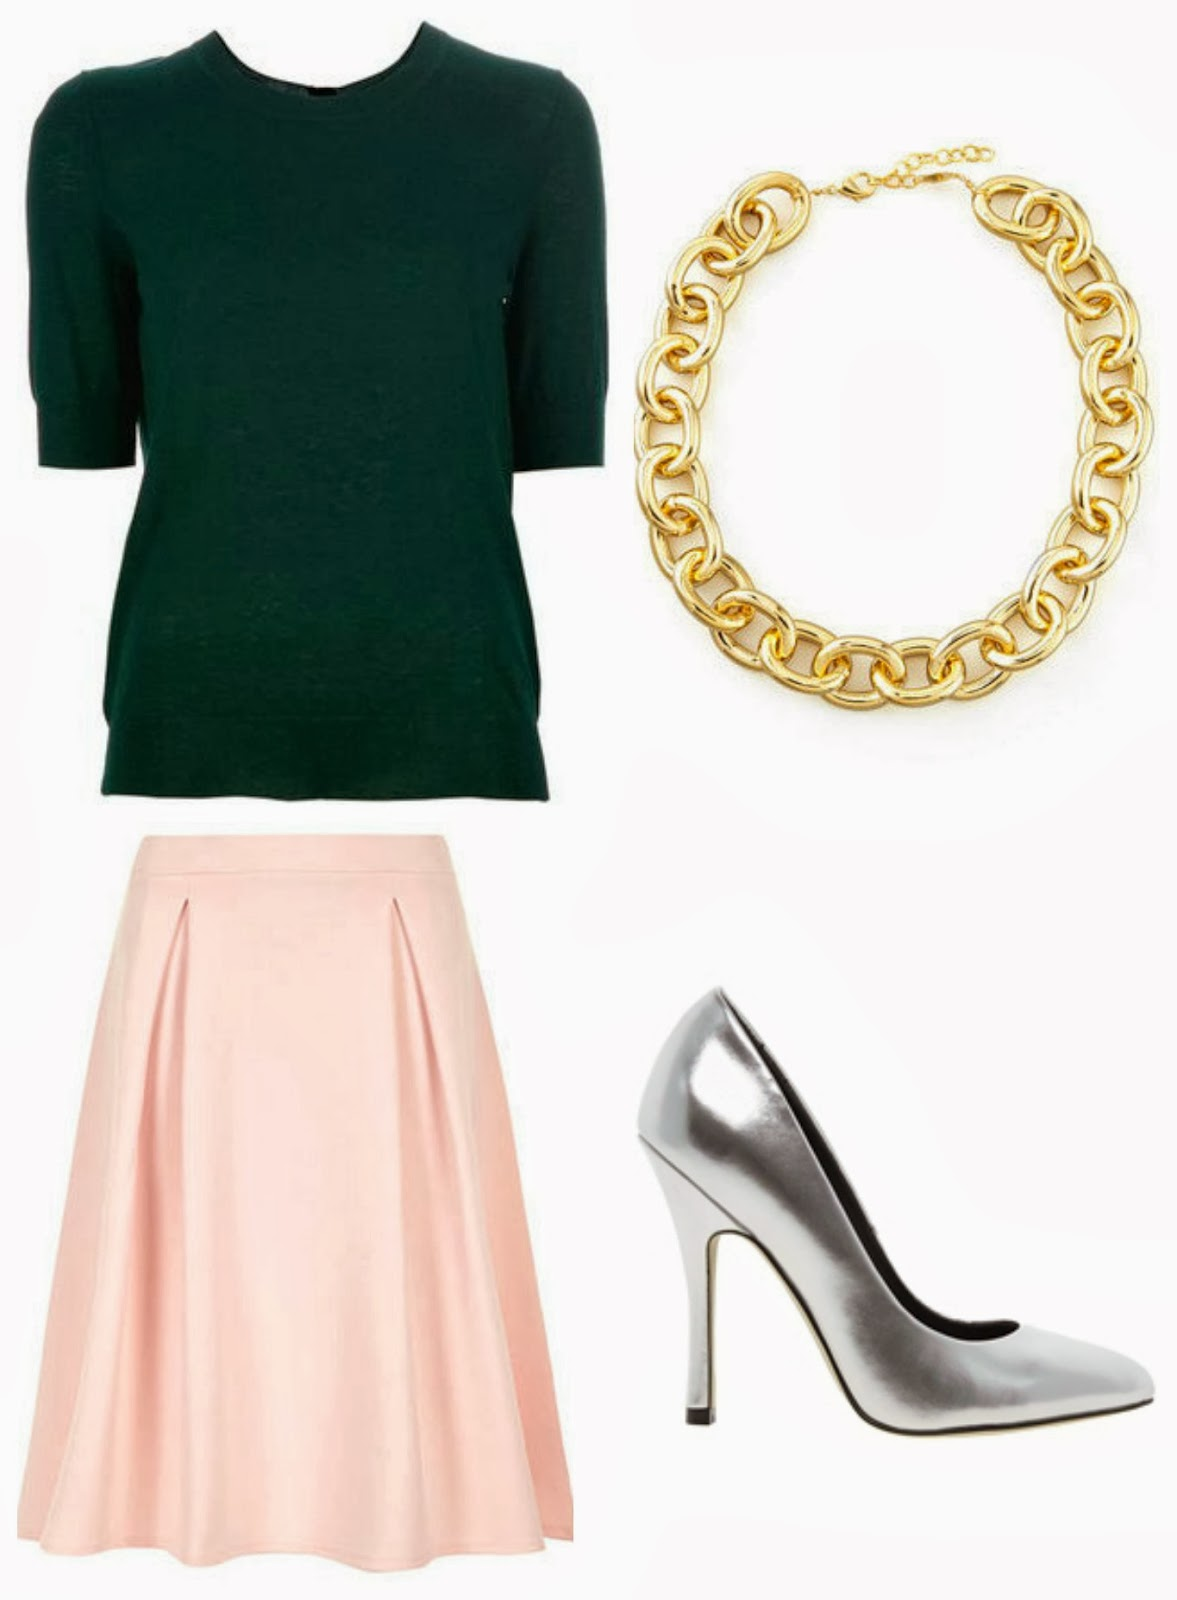 pink-light-midi-skirt-green-dark-sweater-gray-shoe-pumps-metallic-silver-chain-necklace-fall-winter-dinner.jpg